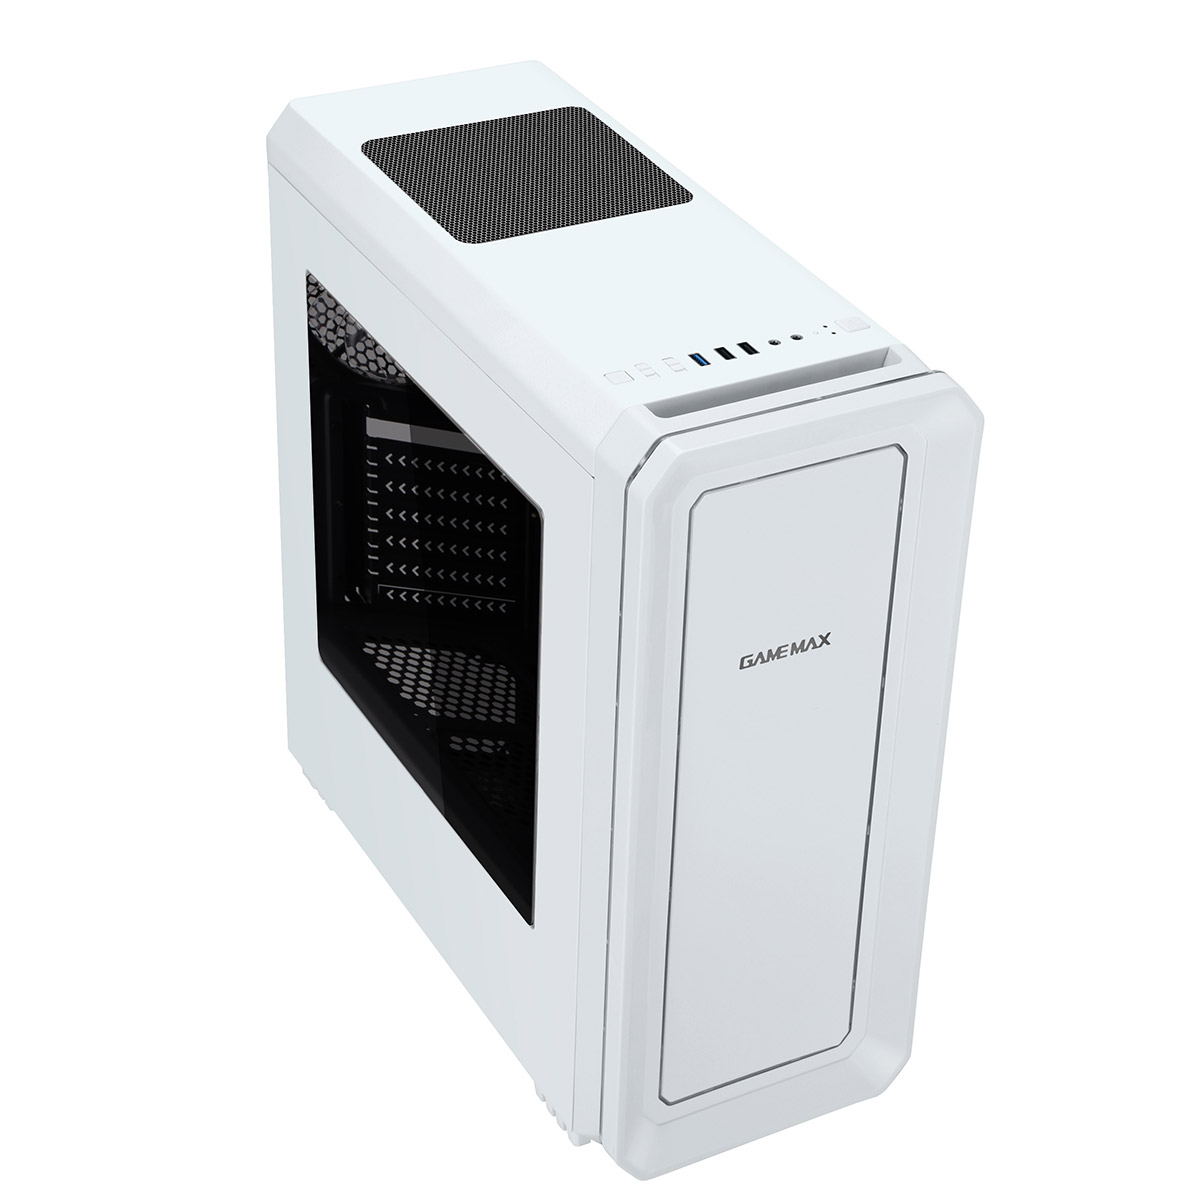 GAMEMAX Vegas White with 2 x 12cm Front Fans with 7 Colour LED Facia